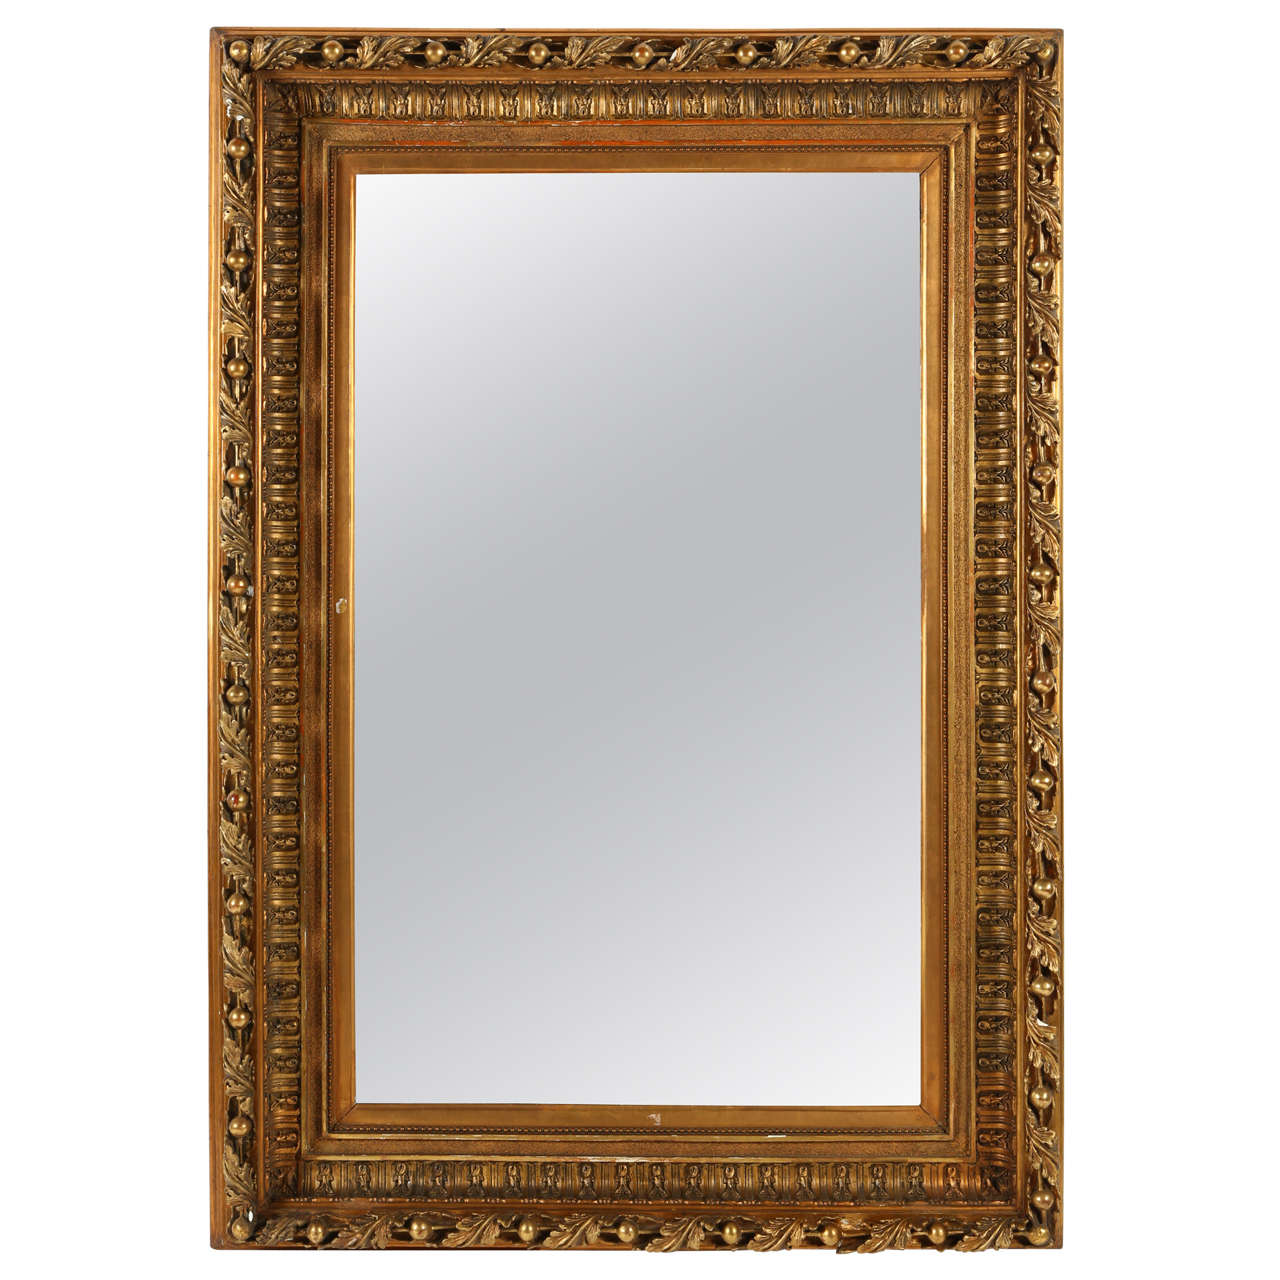 Large giltwood mirror for sale at 1stdibs for Tall mirrors for sale